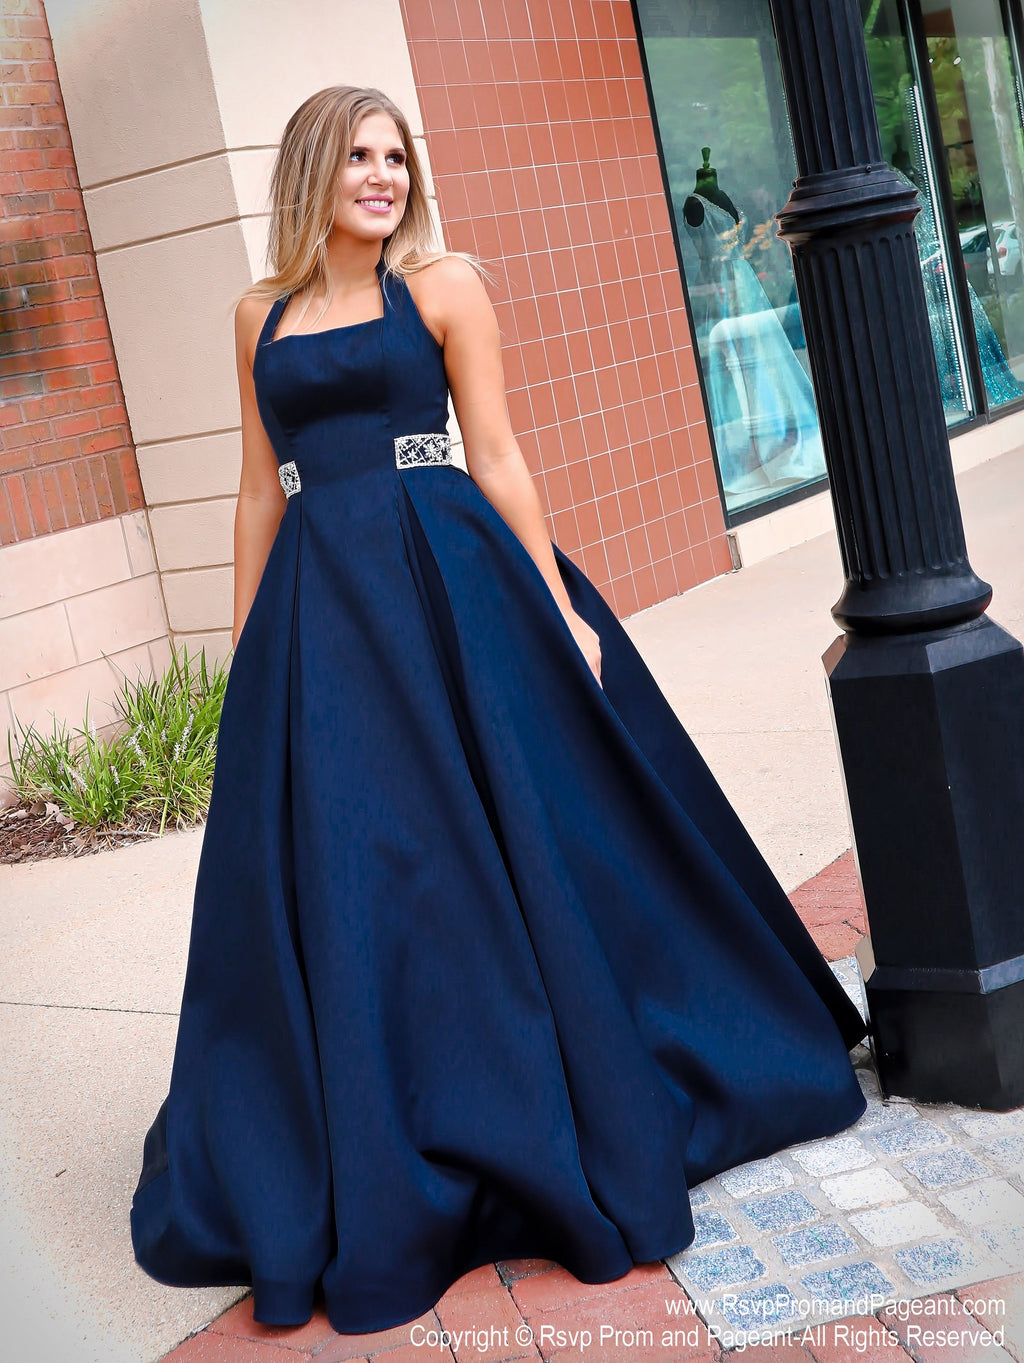 Model in the prettiest ball gown you've ever seen with its halter neckline and beautifully detailed back straps! And it's at Rsvp Prom and Pageant, your source for the HOTTEST Prom and Pageant Dresses and Exclusive Evening Gowns and located in Atlanta, Georgia!